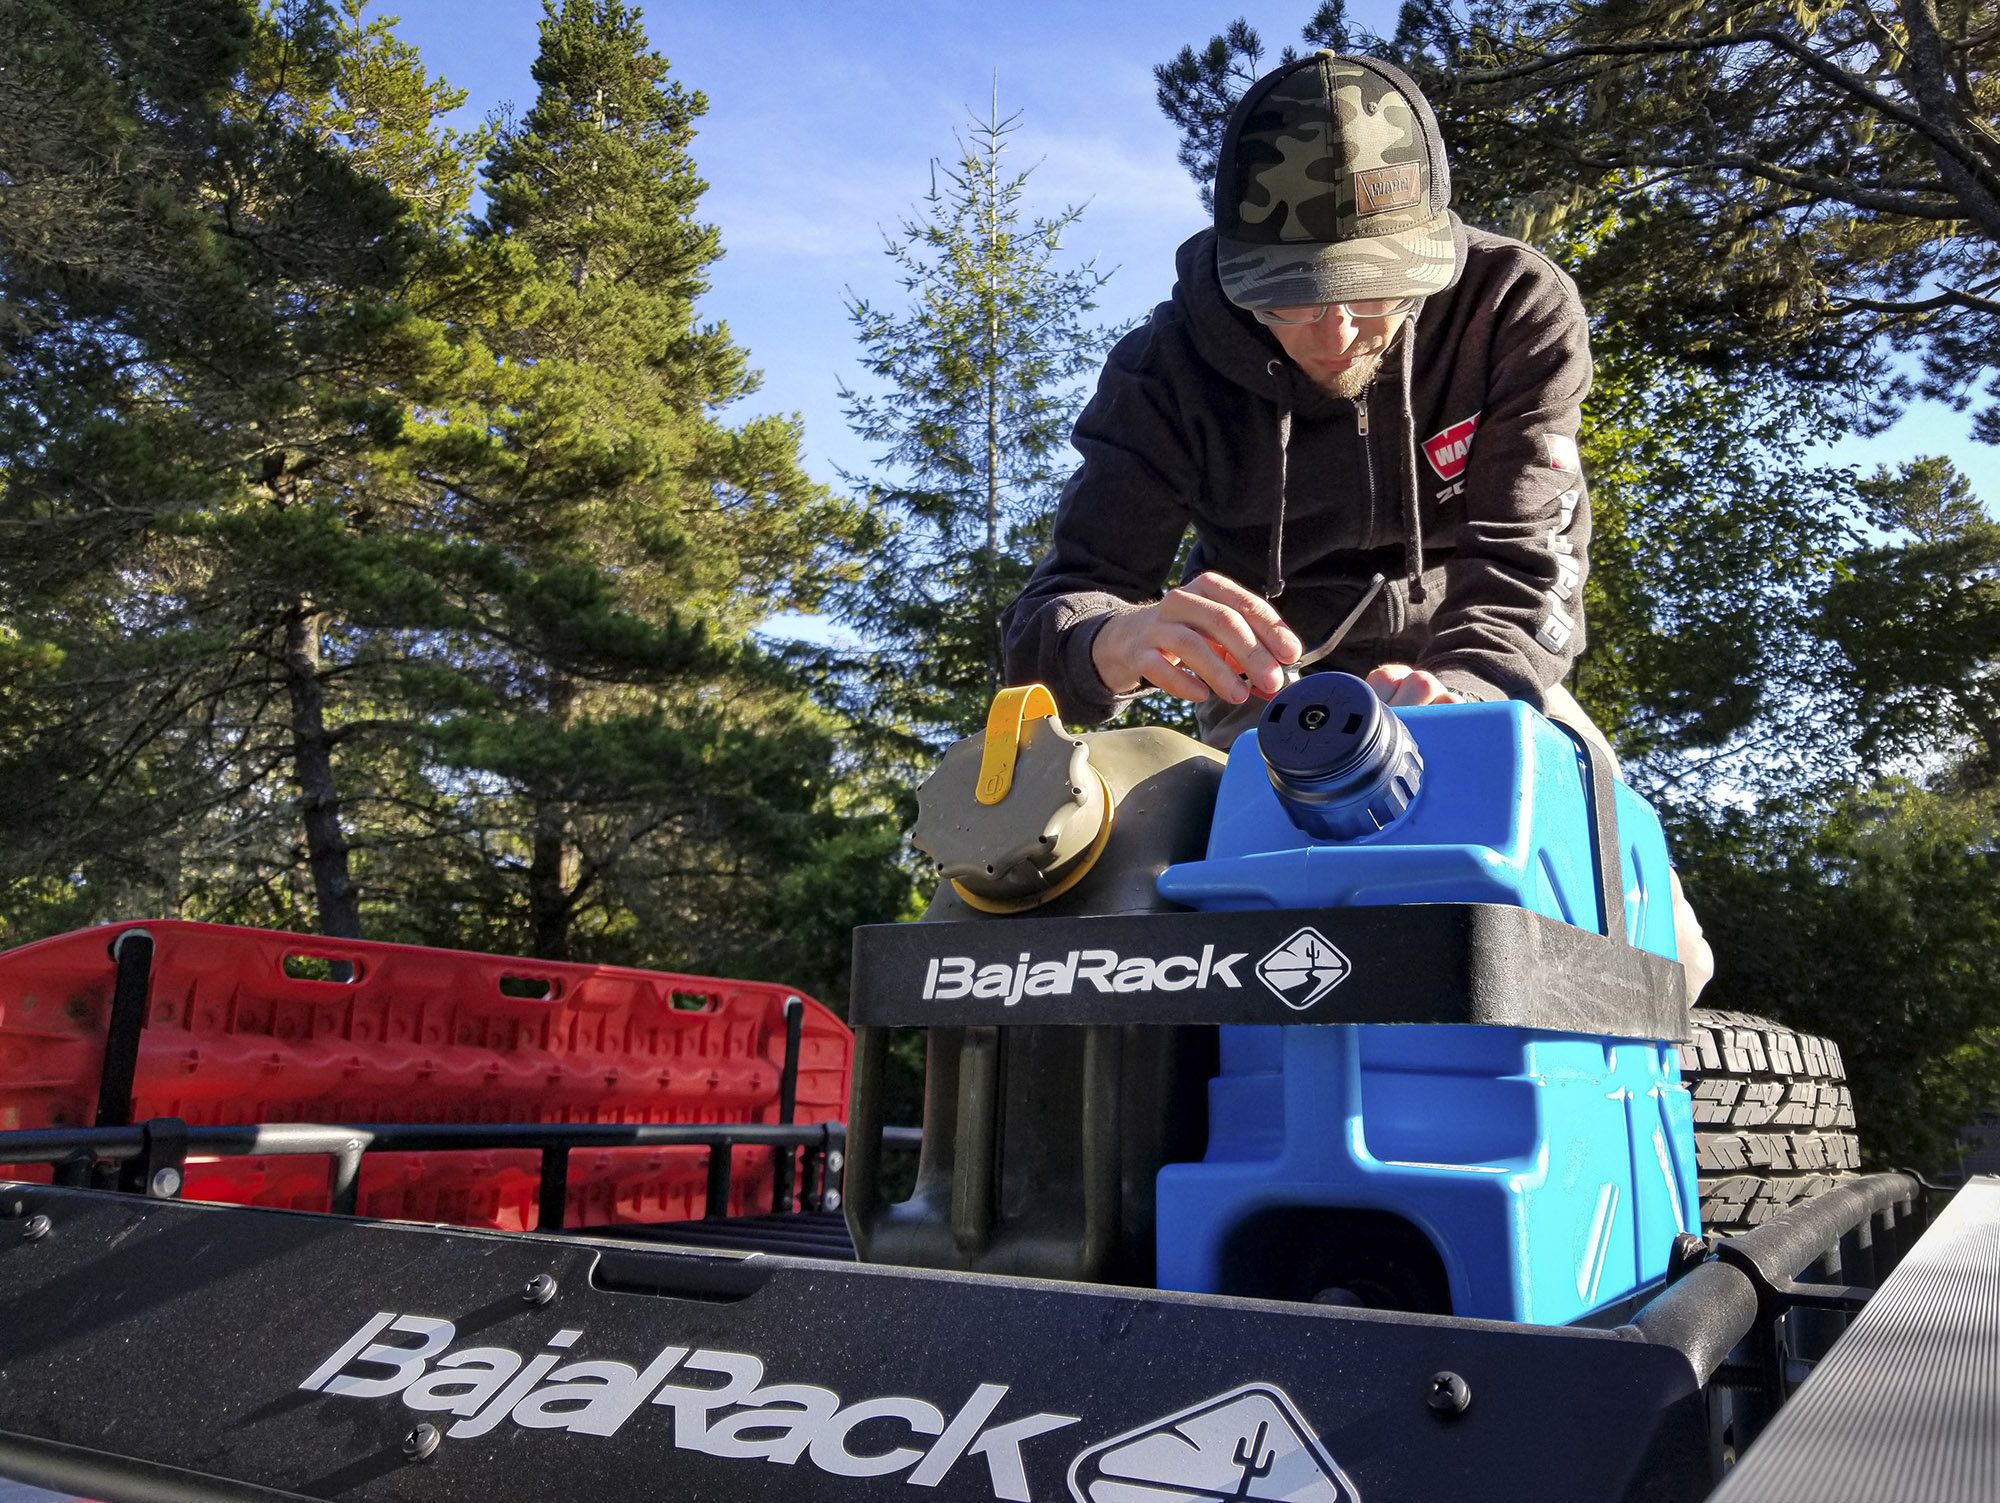 BajaRack roof basket holds red MATRAX recovery boards, a blue water jerry can, and army green diesel fuel can.